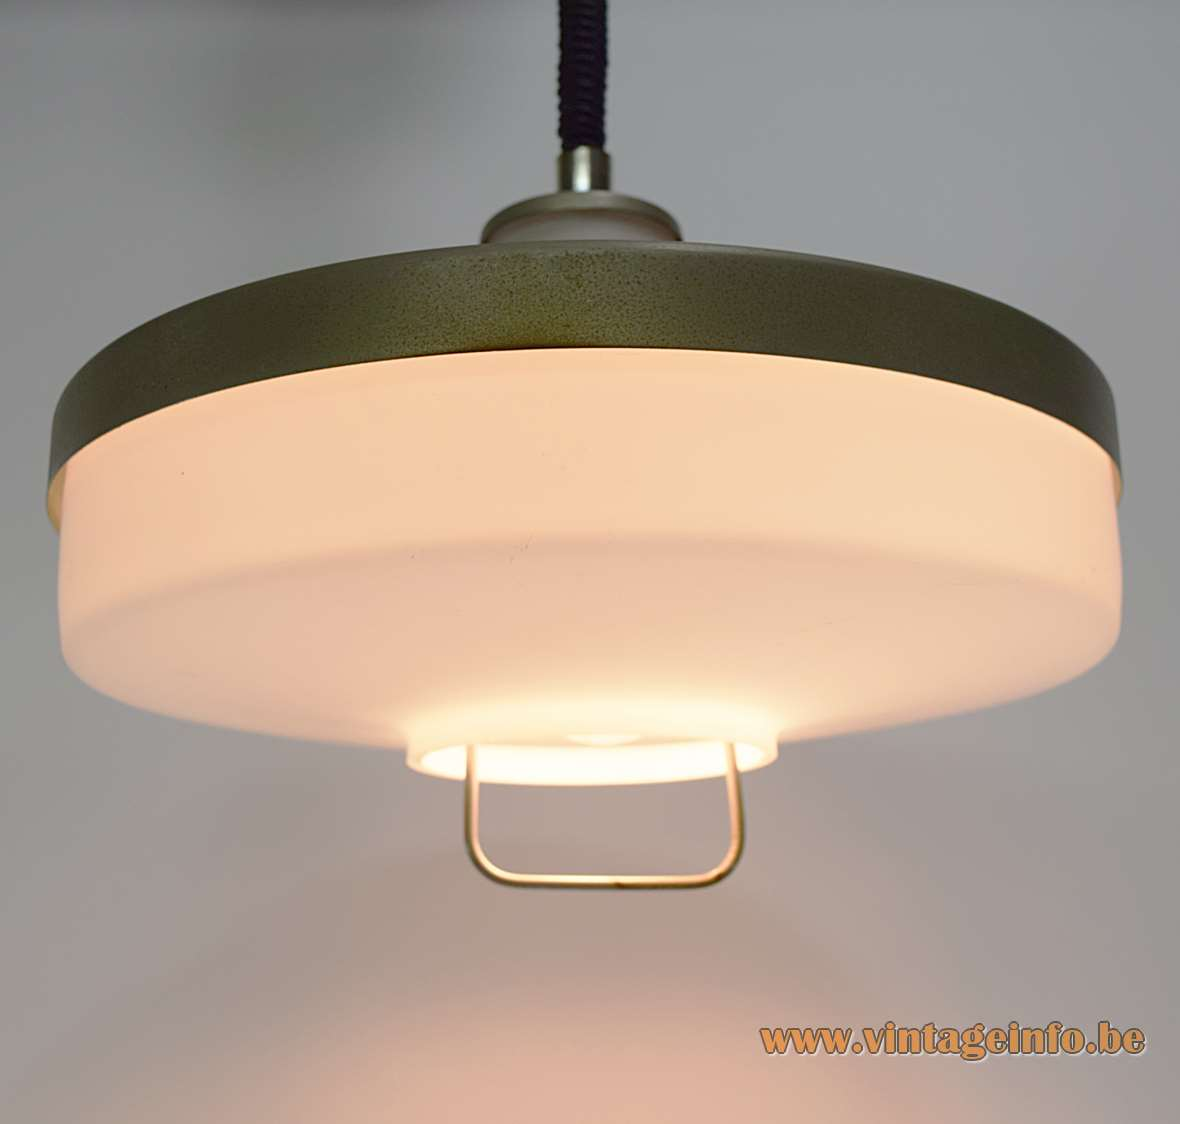 Rise & Fall Swedish Pendant Lamp opaque opal glass UFO green/gray metallic painted on top 1960s 1970s MCM Rolly